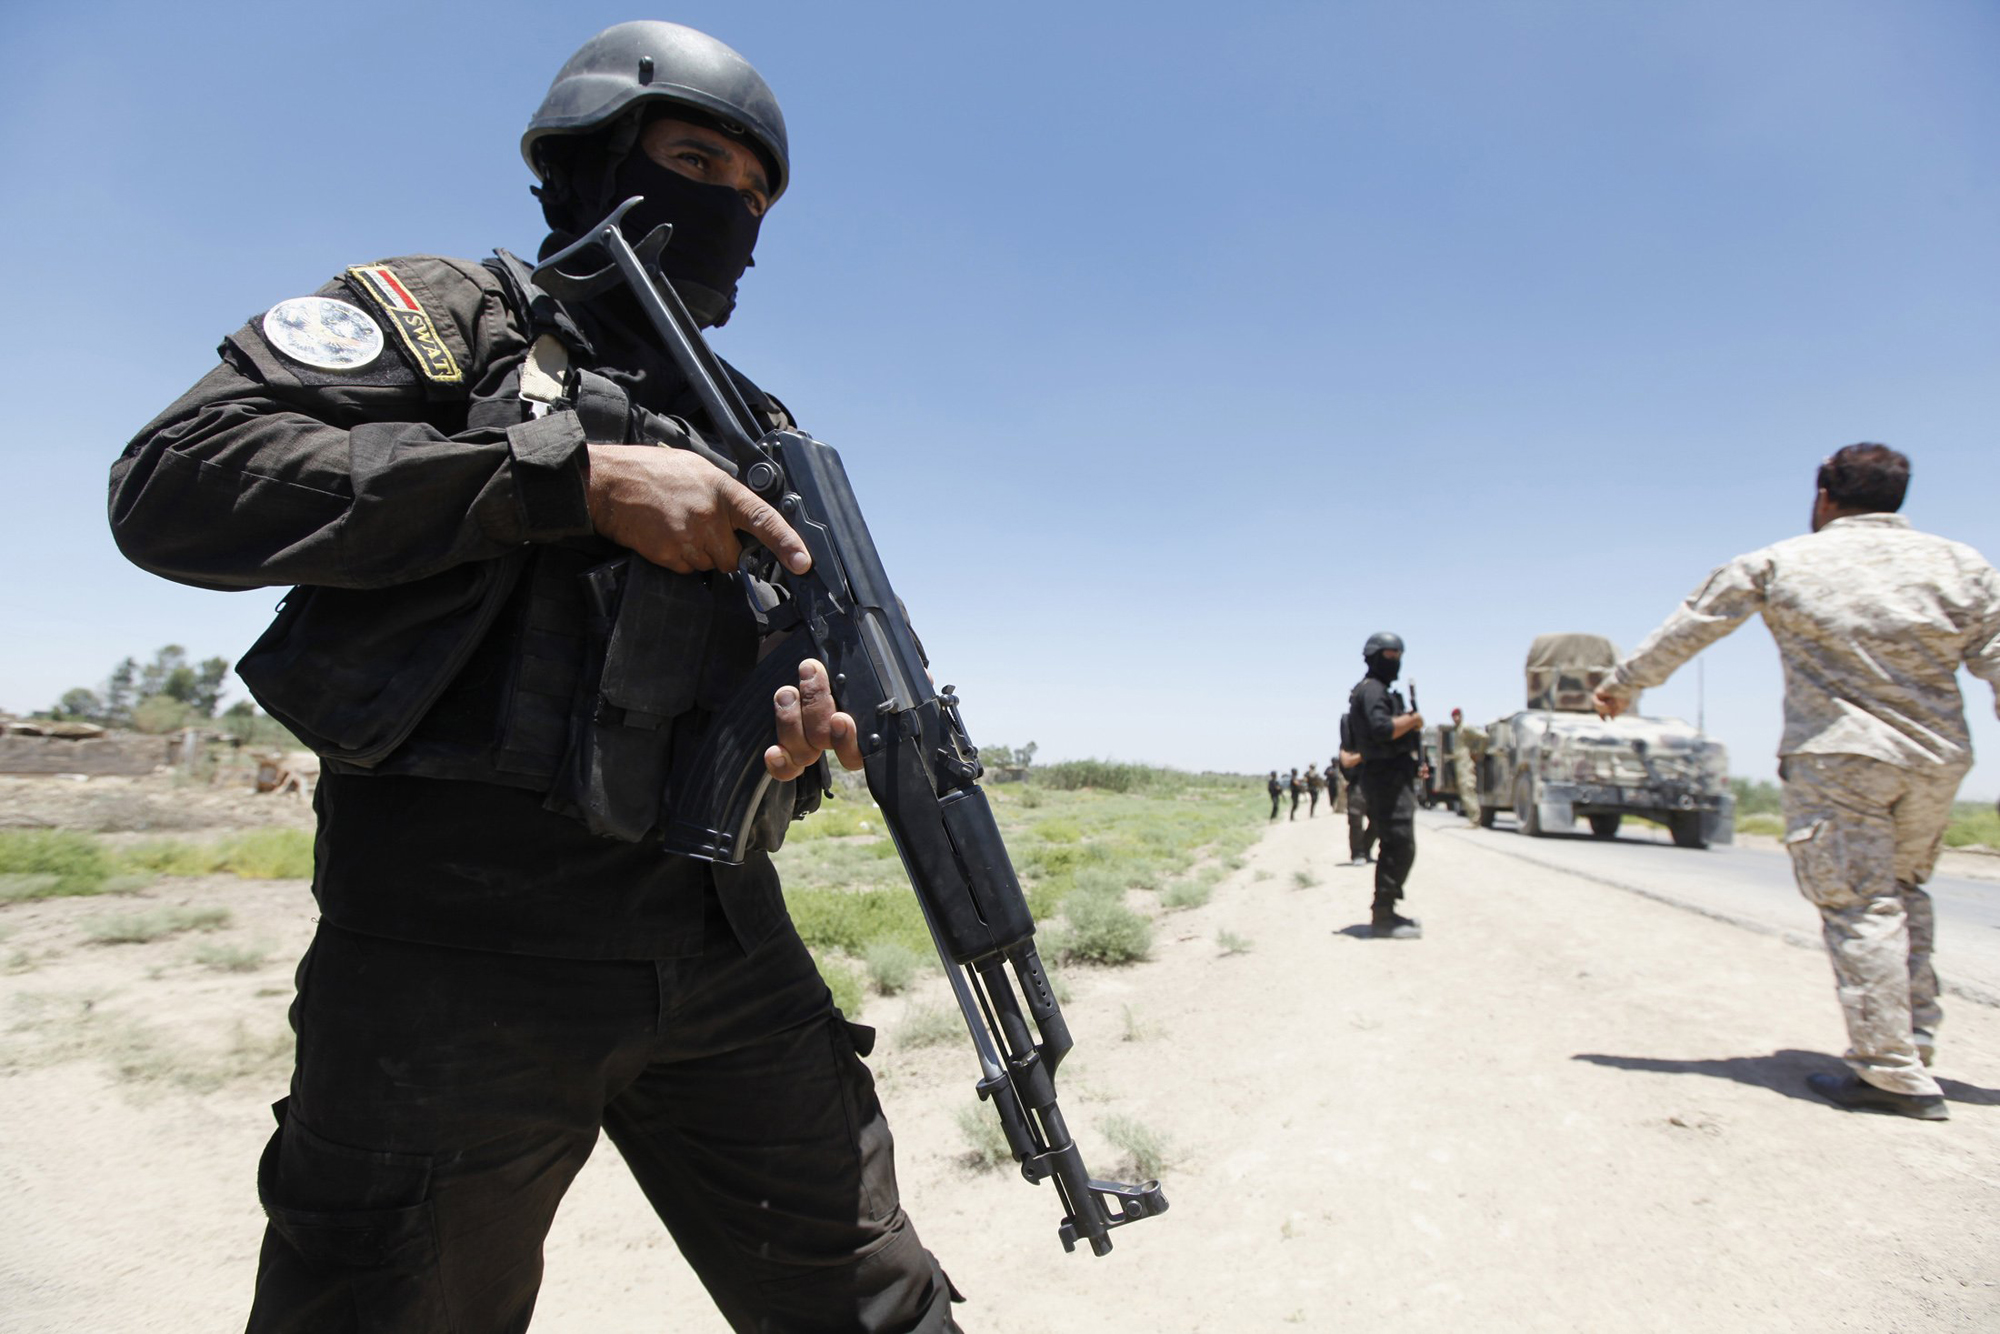 Members of the Iraqi security forces take their positions during an intensive security deployment west of Baghdad, June 24, 2014.